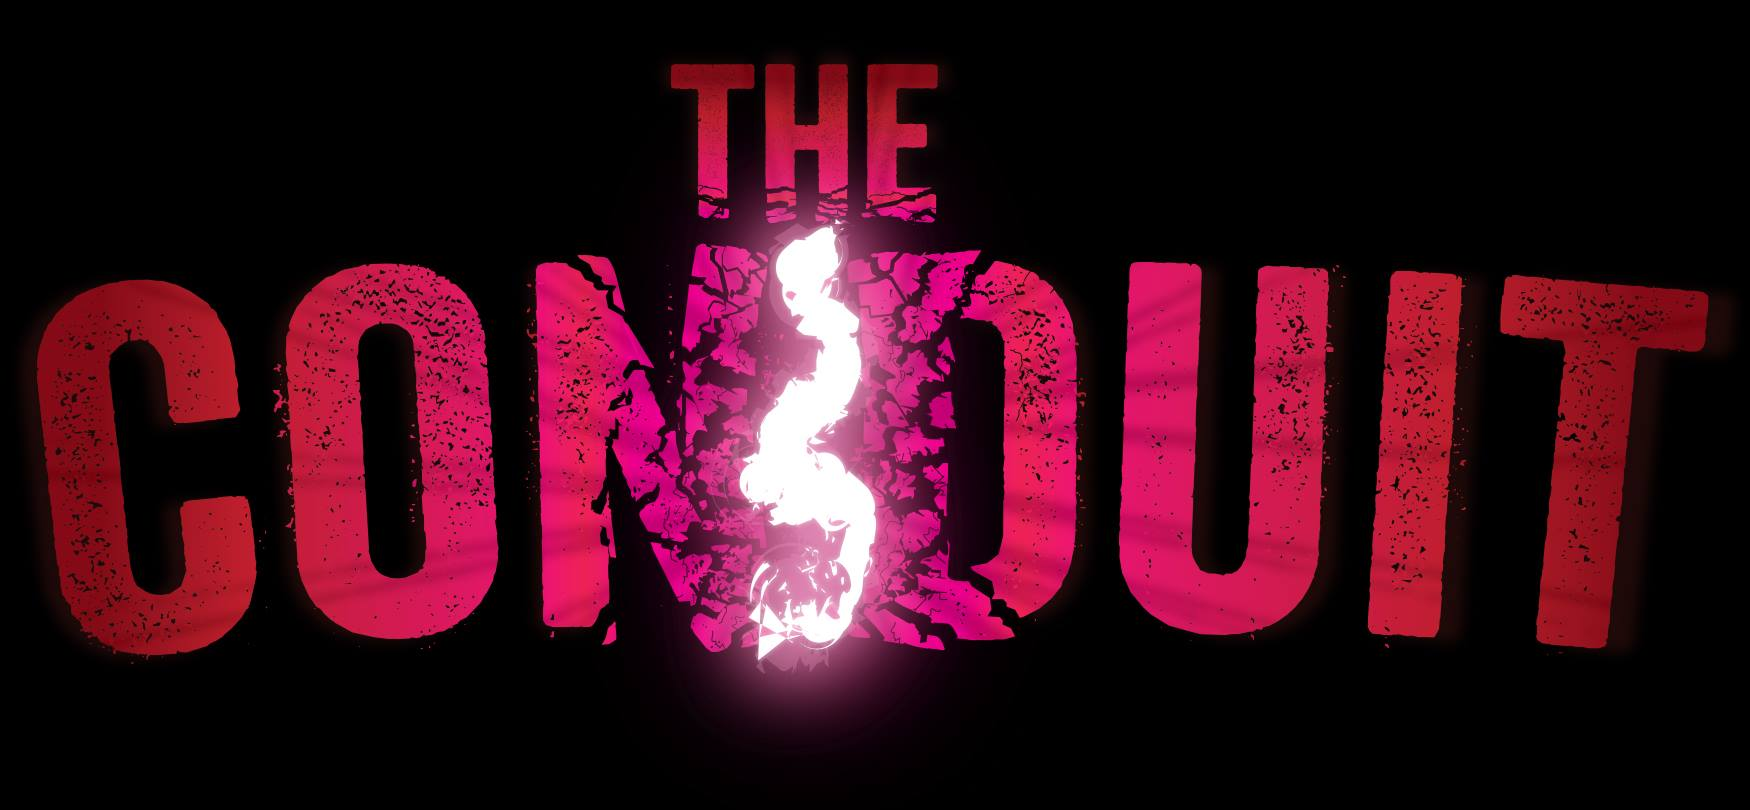 The Conduit Short Film with John Hale